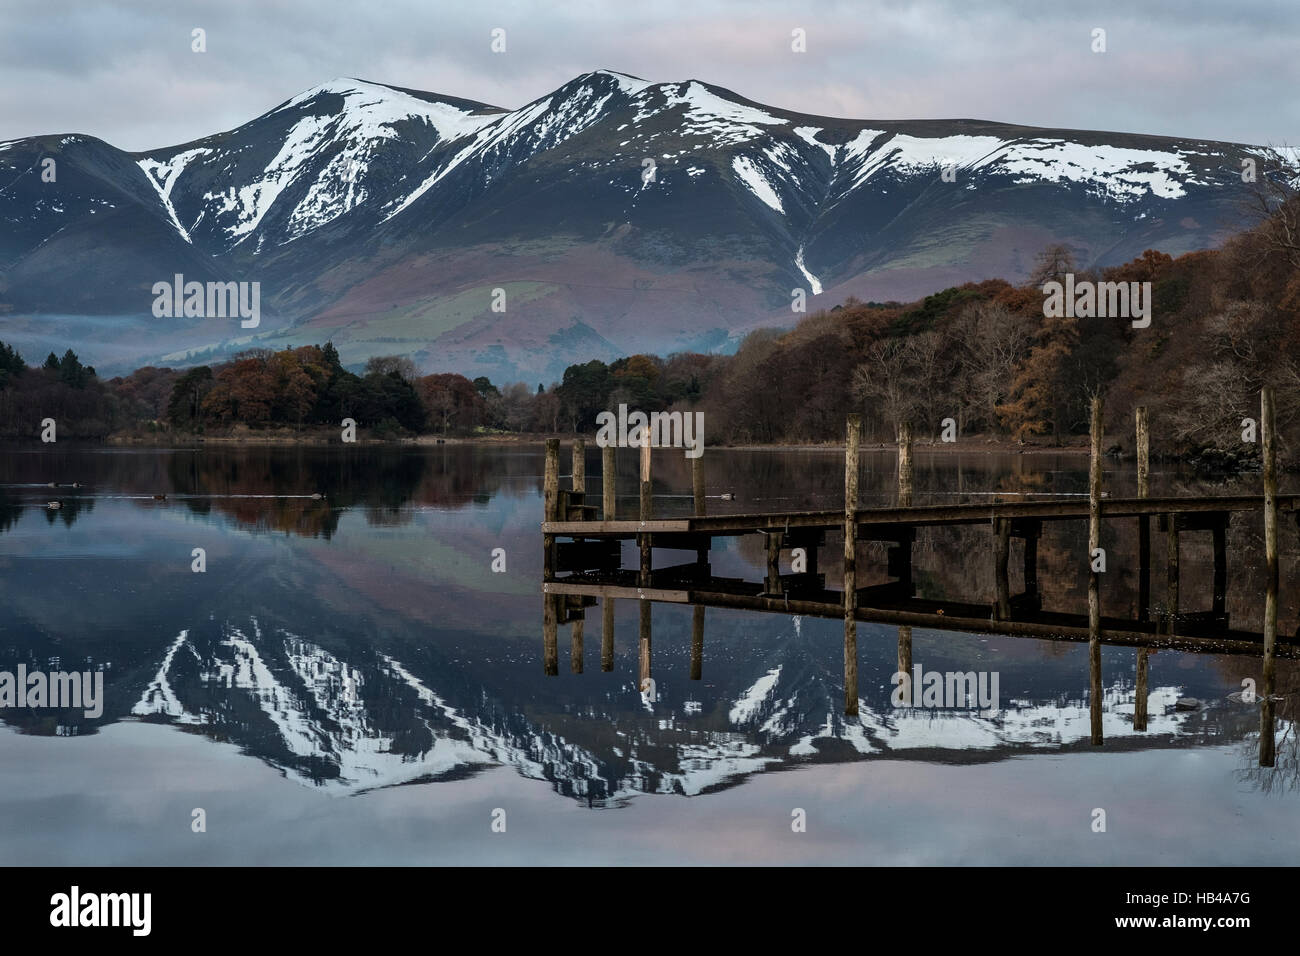 Dusk on Derwent Water in The Lake District with Skiddaw towering high above. - Stock Image